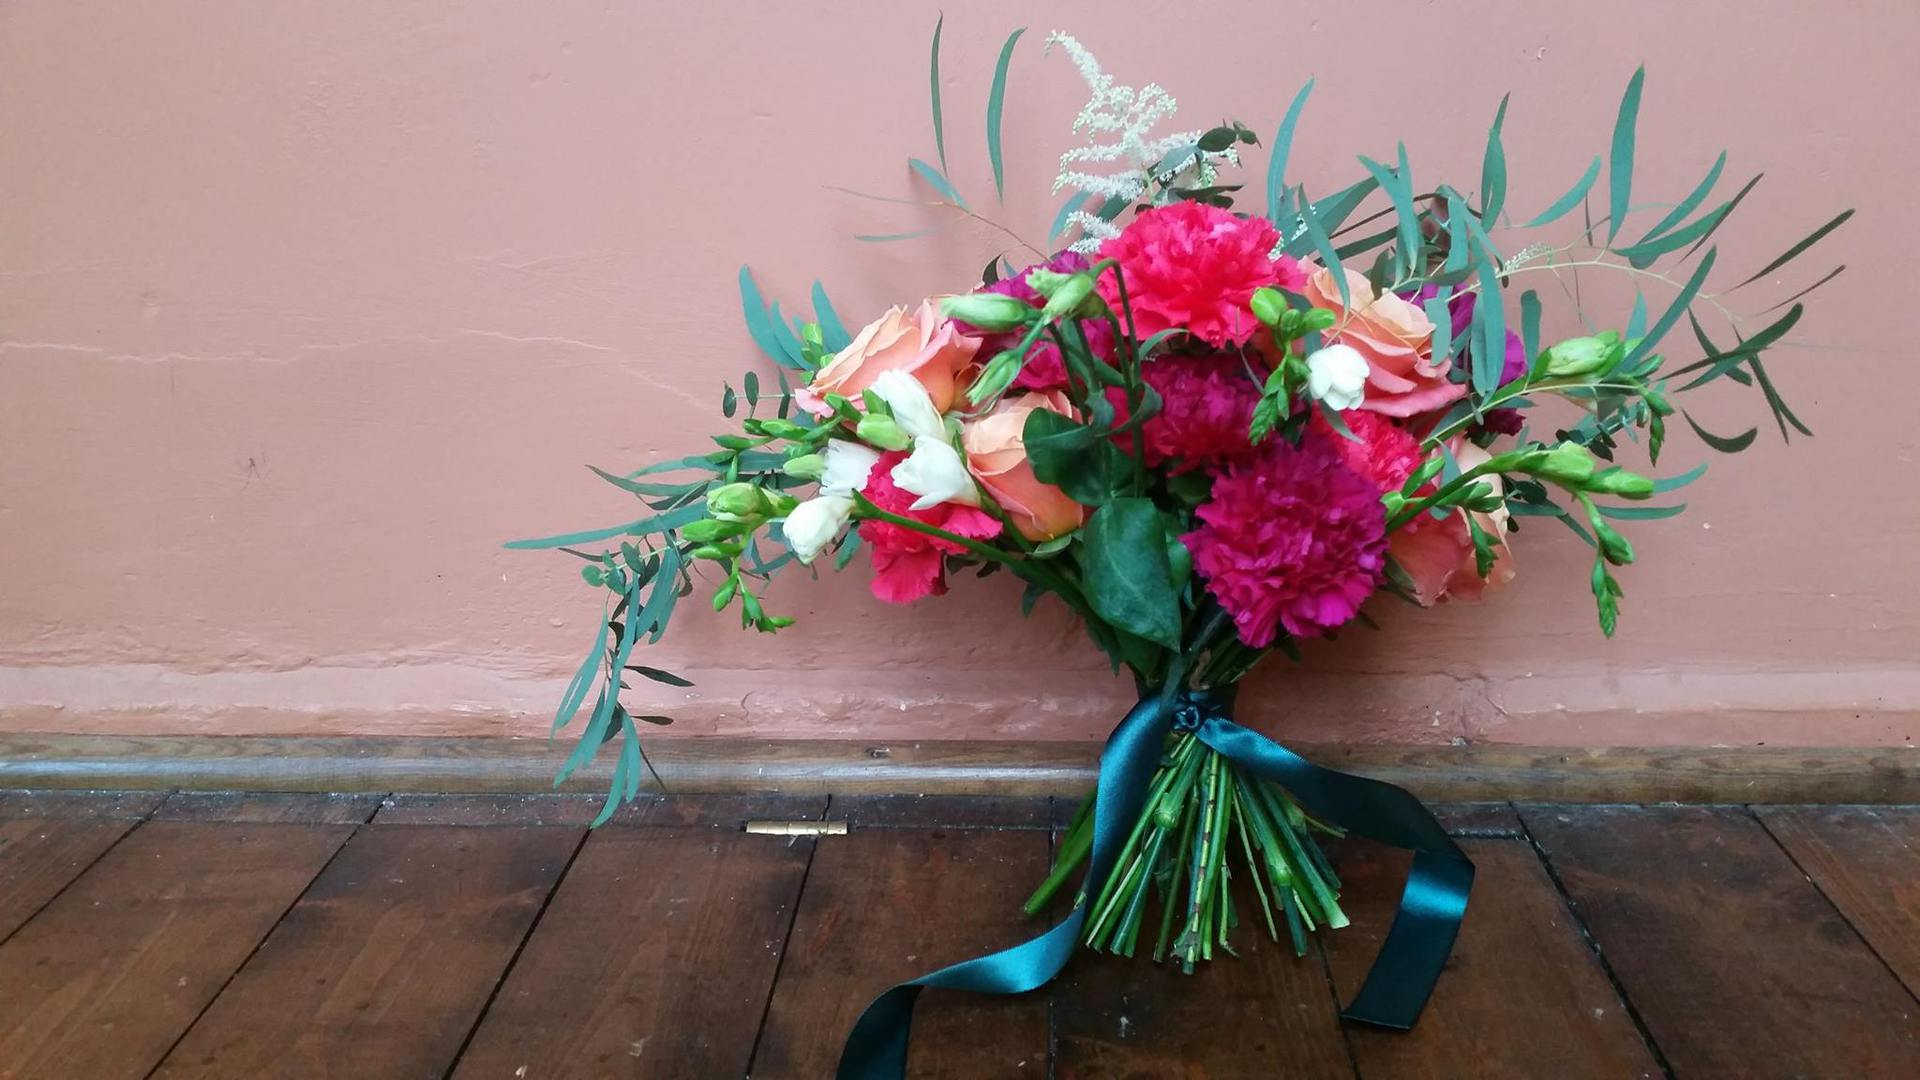 Florist interview: What flower options do I have for a funeral?